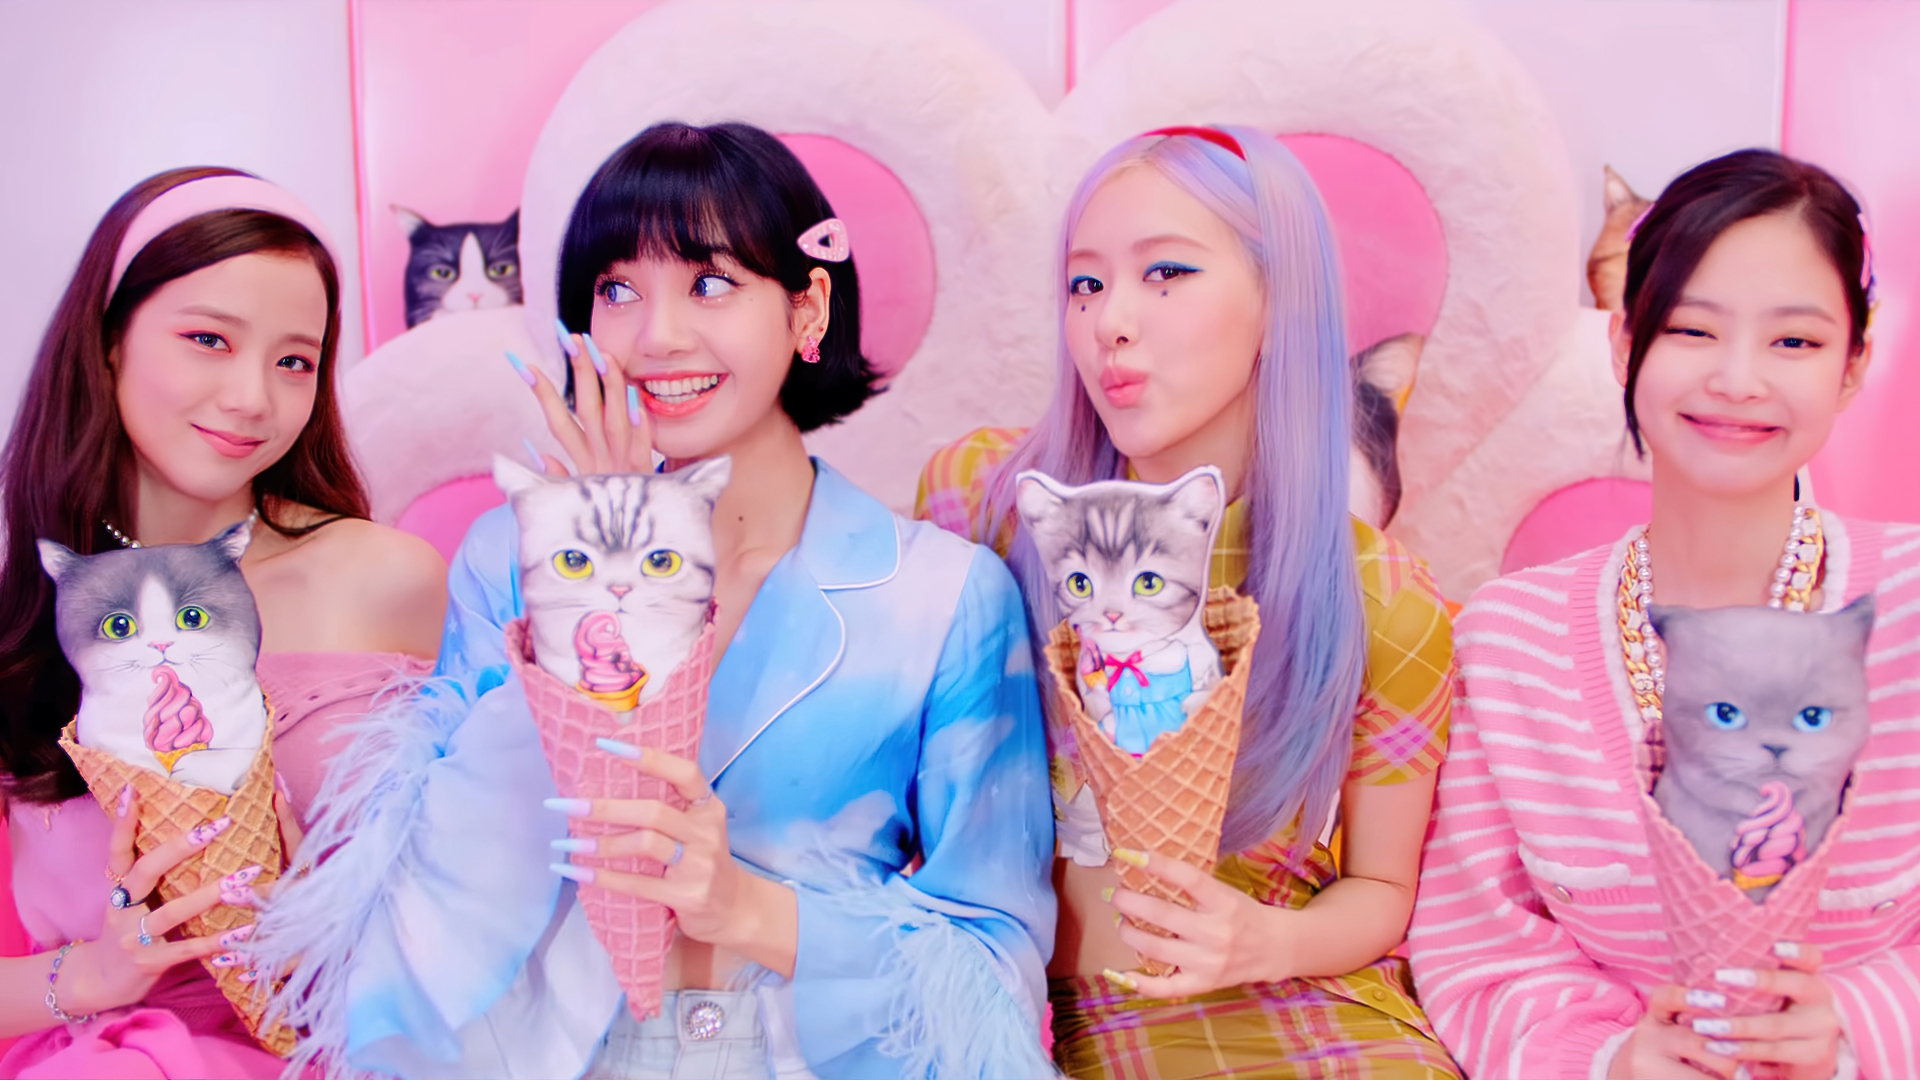 Girls from Blackpink with kittens in cones Wallpaper 4k ...